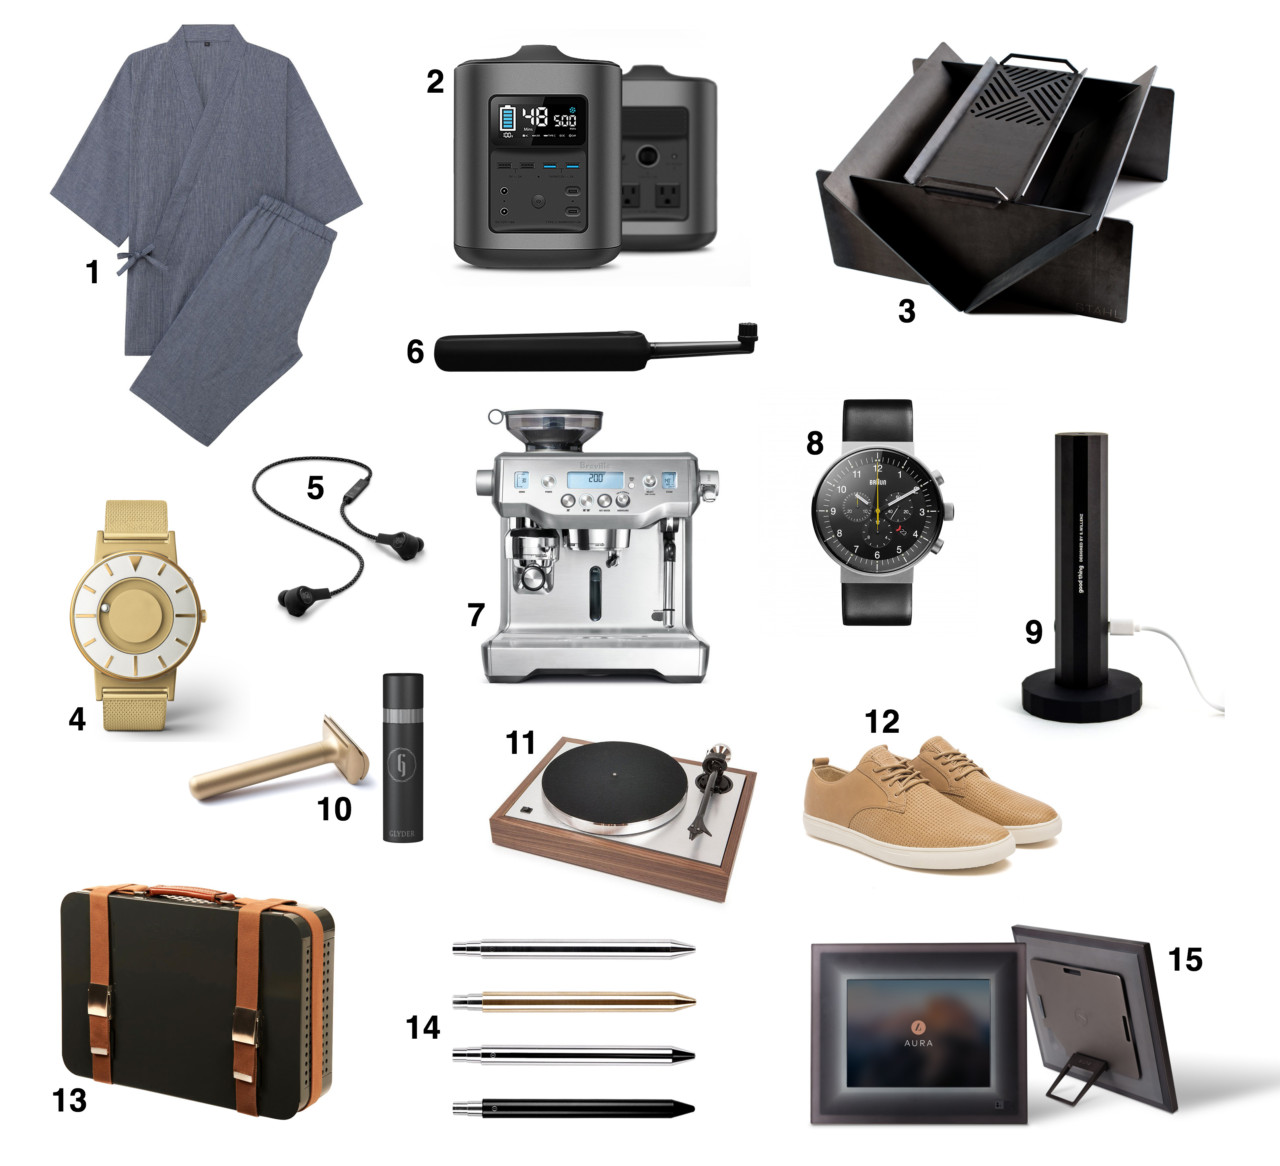 Father S Day Gift Guide Gadgets Books: The Design Milk 2017 Father's Day Gift Guide